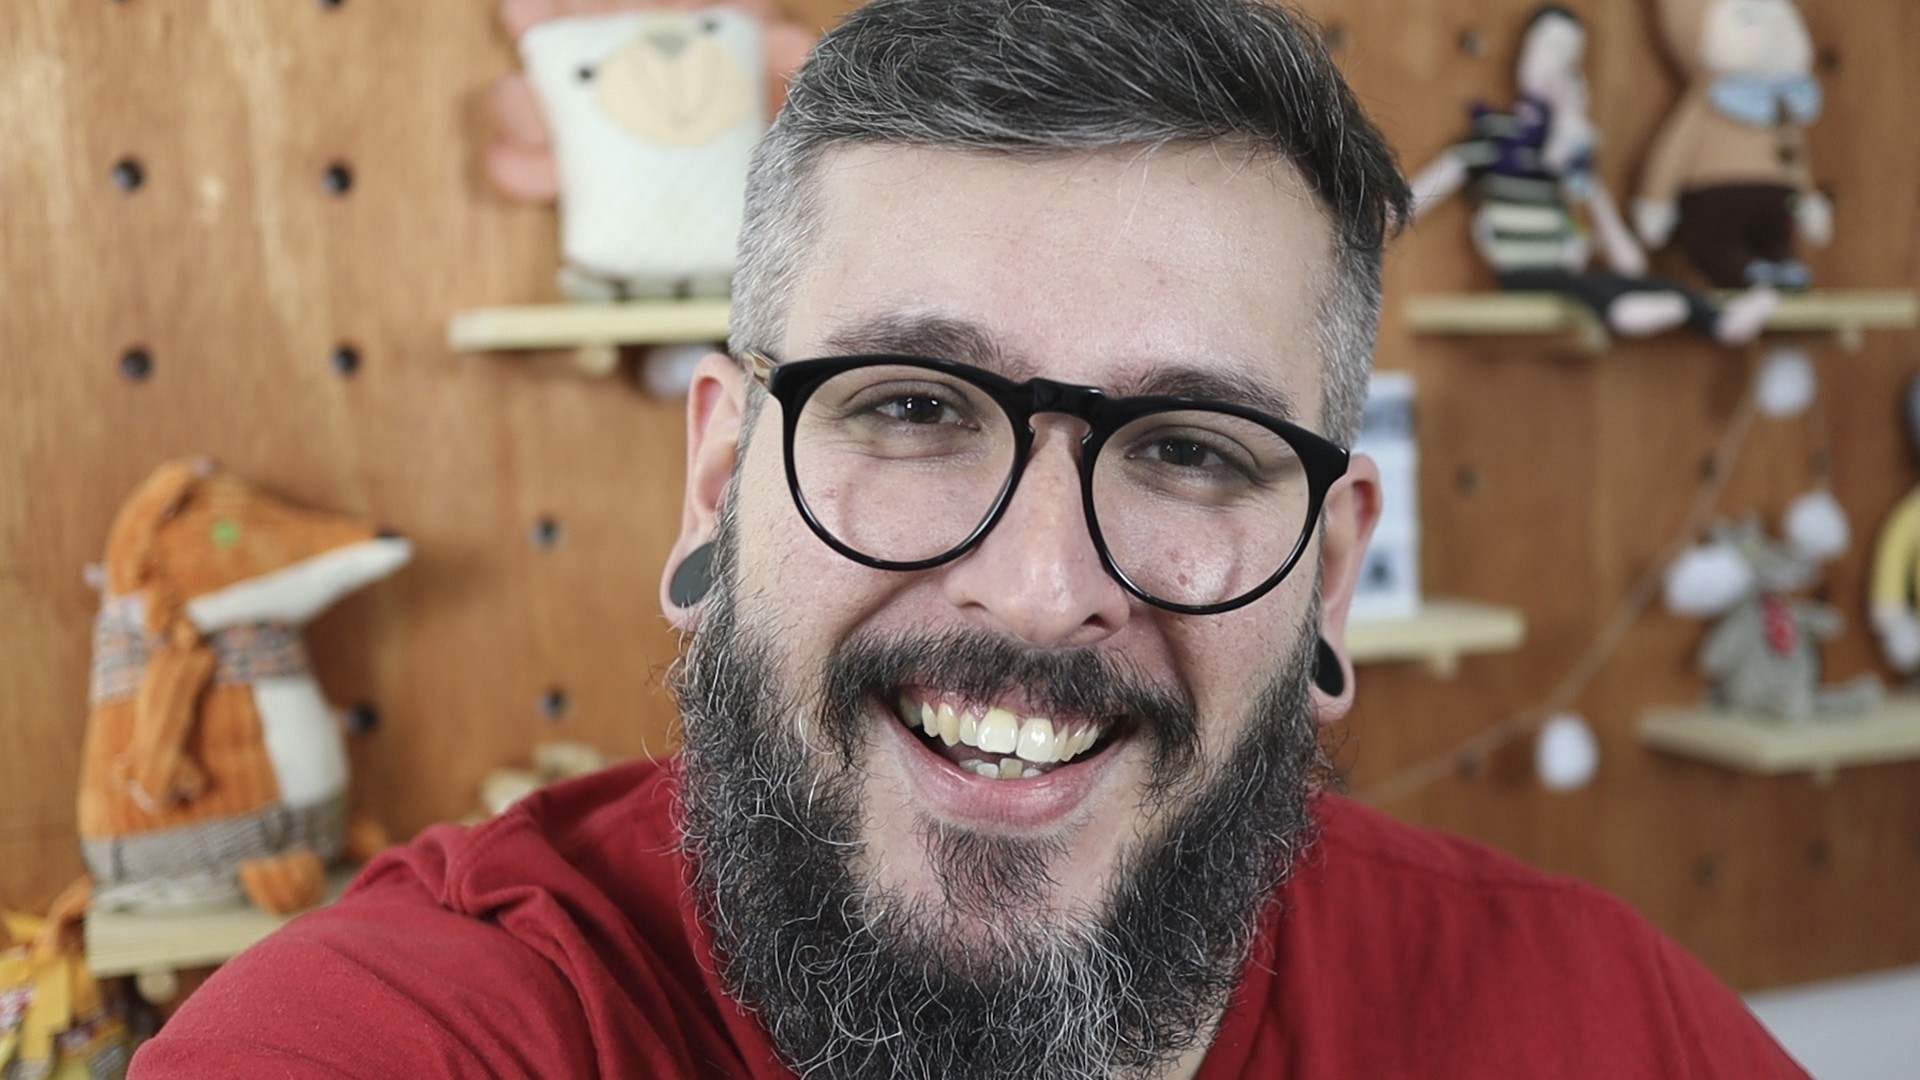 Thiago Queiroz é escritor, youtuber, host do podcast Tricô de Pais, criador do site Paizinho, Vírgula! e educador parental certificado pela Attachment Parenting International e Positive Discipline Association. (Foto: Reprodução)